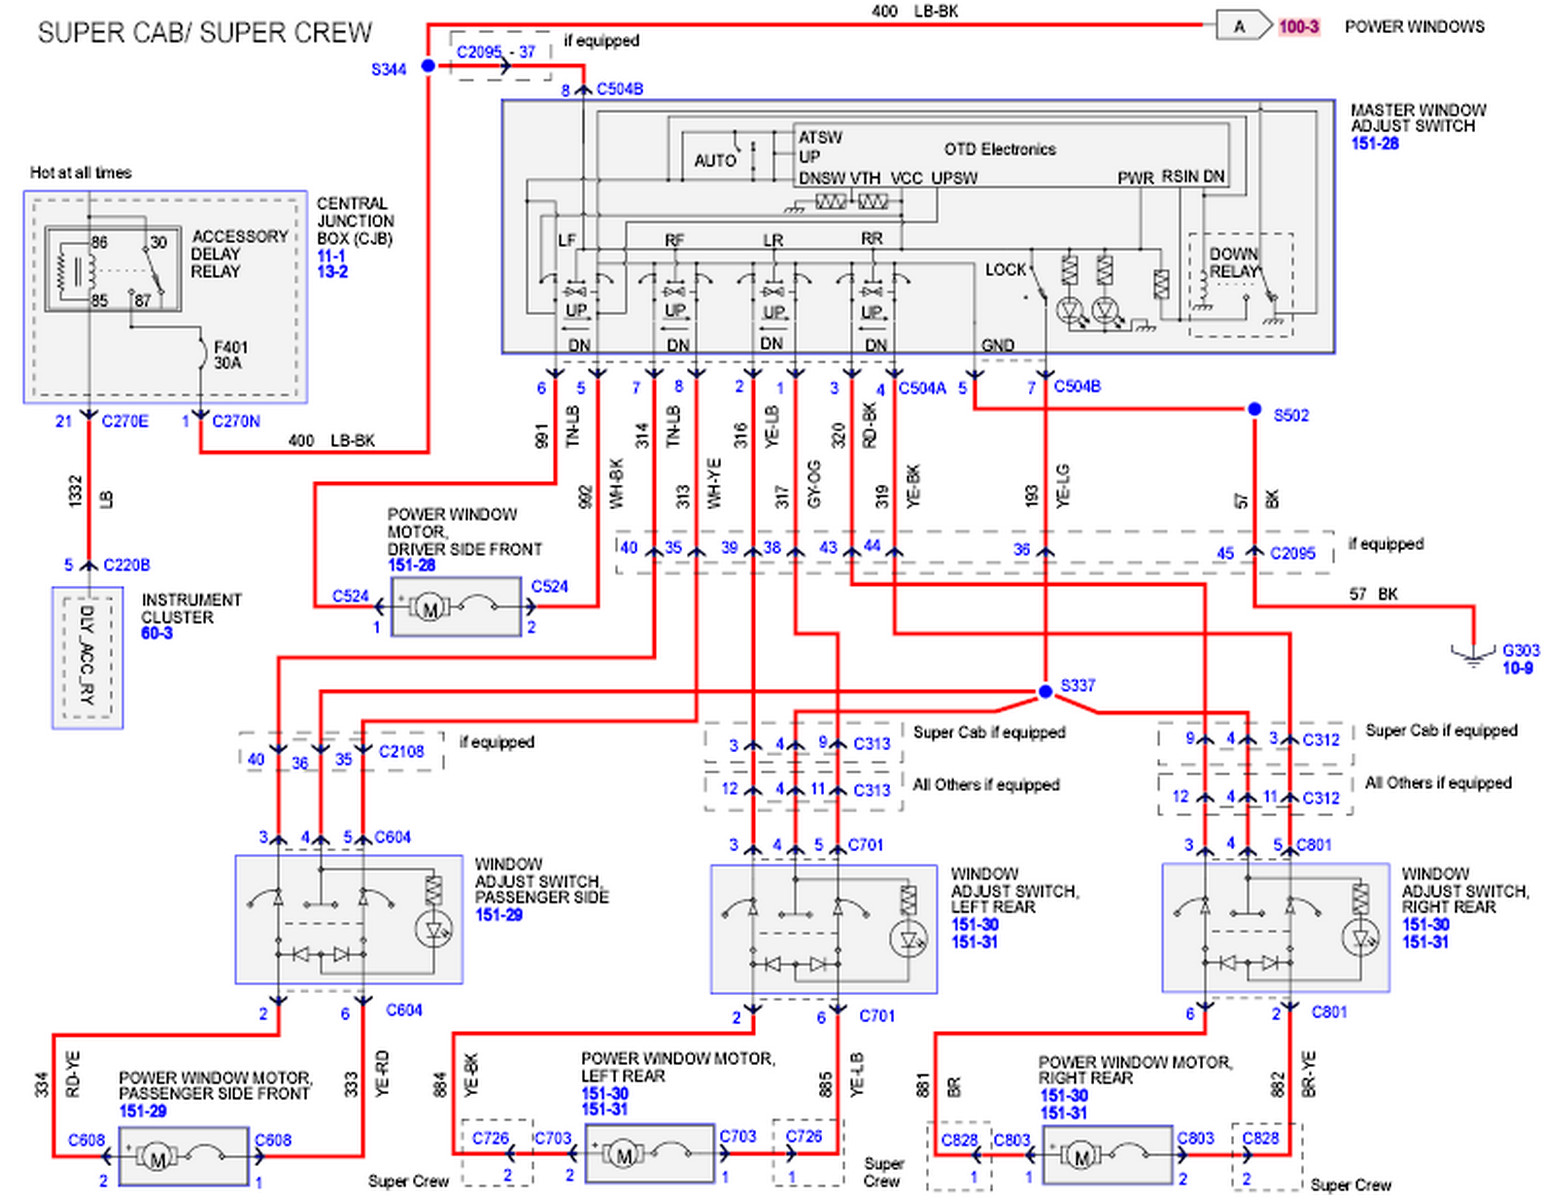 hight resolution of ford power window diagram best wiring diagram 99 ford f 150 power window wiring diagram